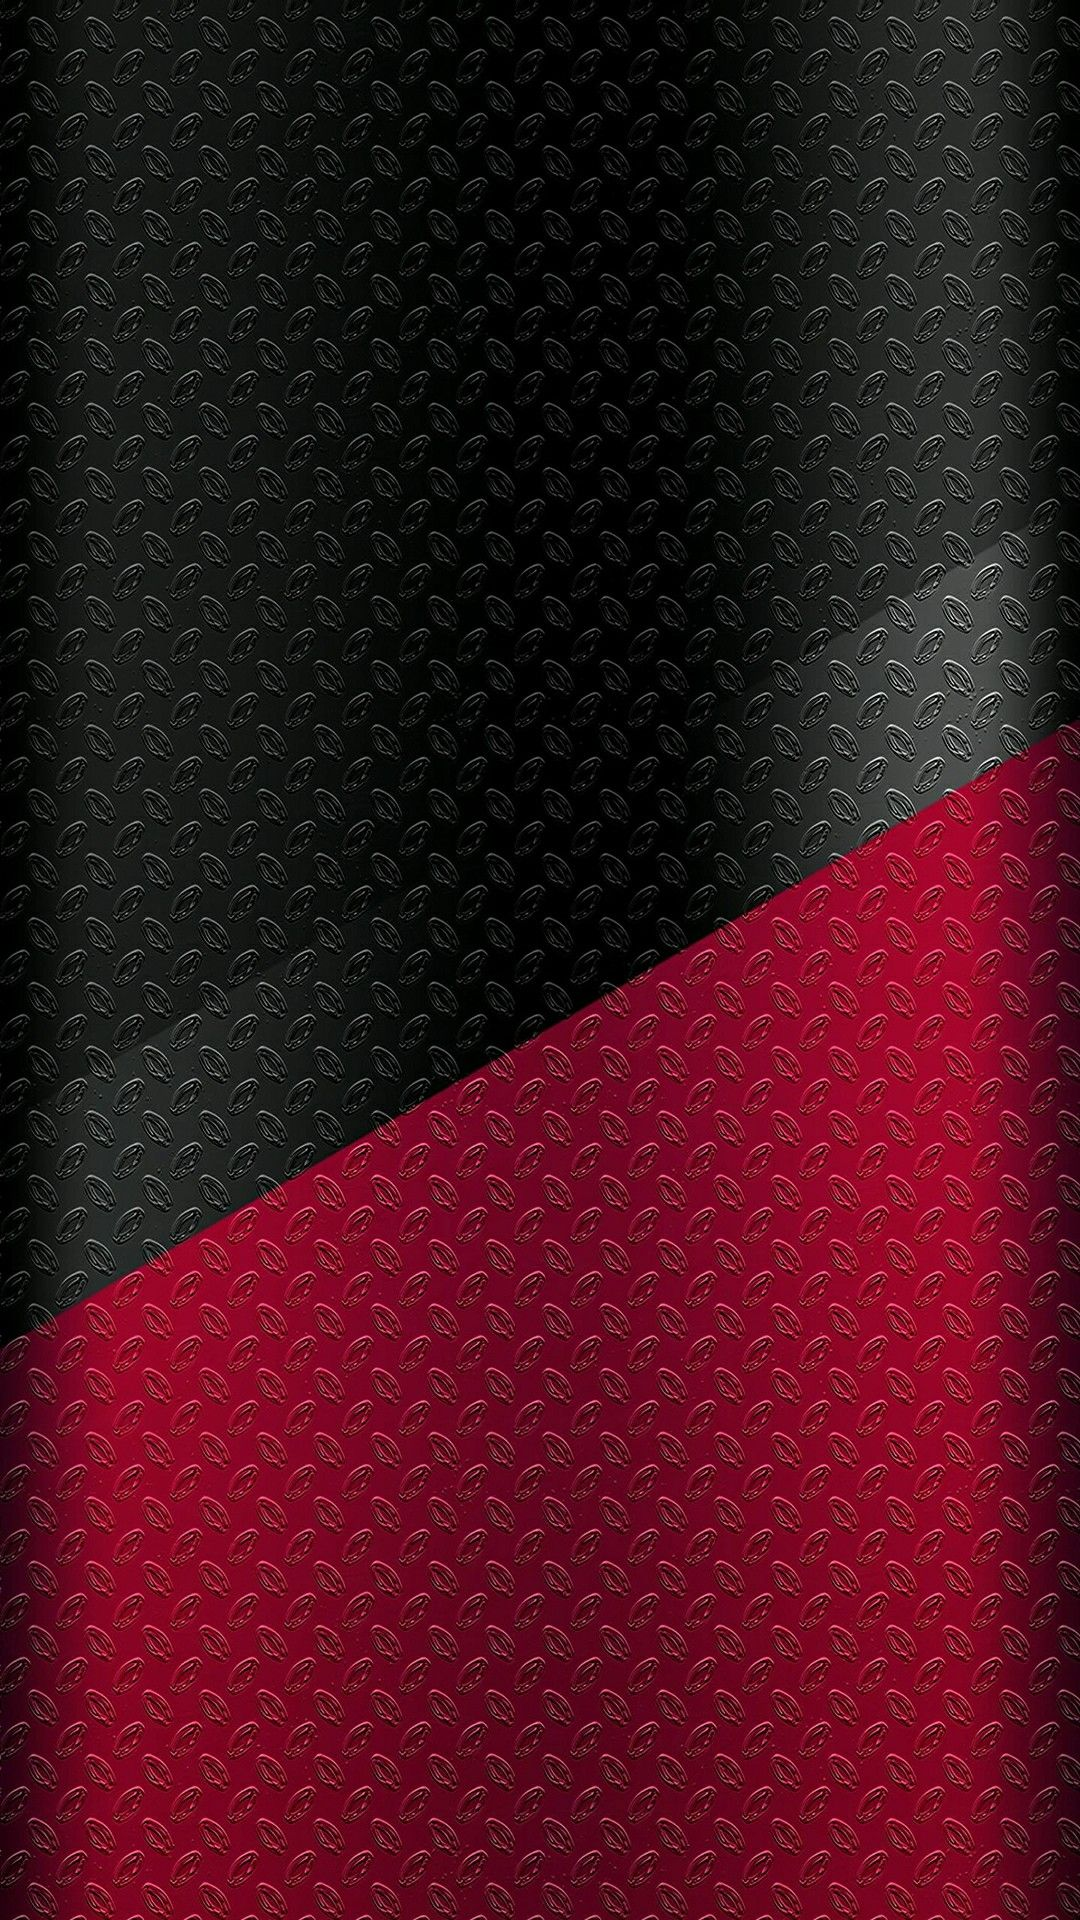 Cool Wallpaper Home Screen Red - c867d0f0124832d2700030f3740c22be  Gallery_553770.jpg